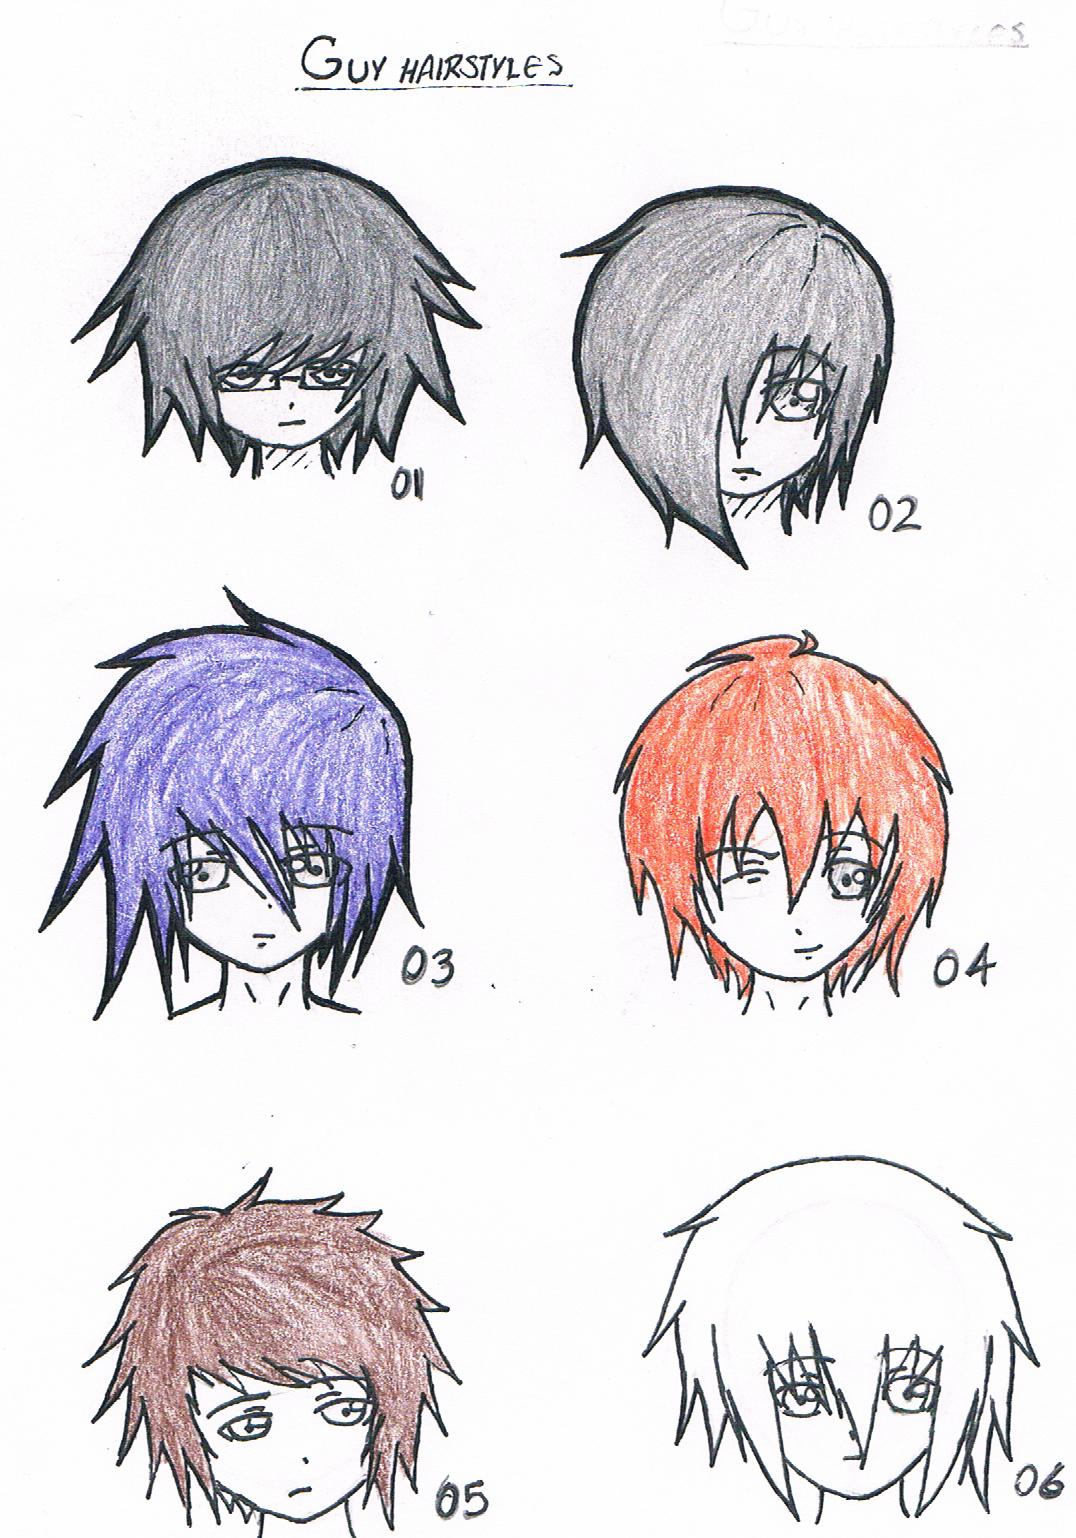 Anime Hairstyle...